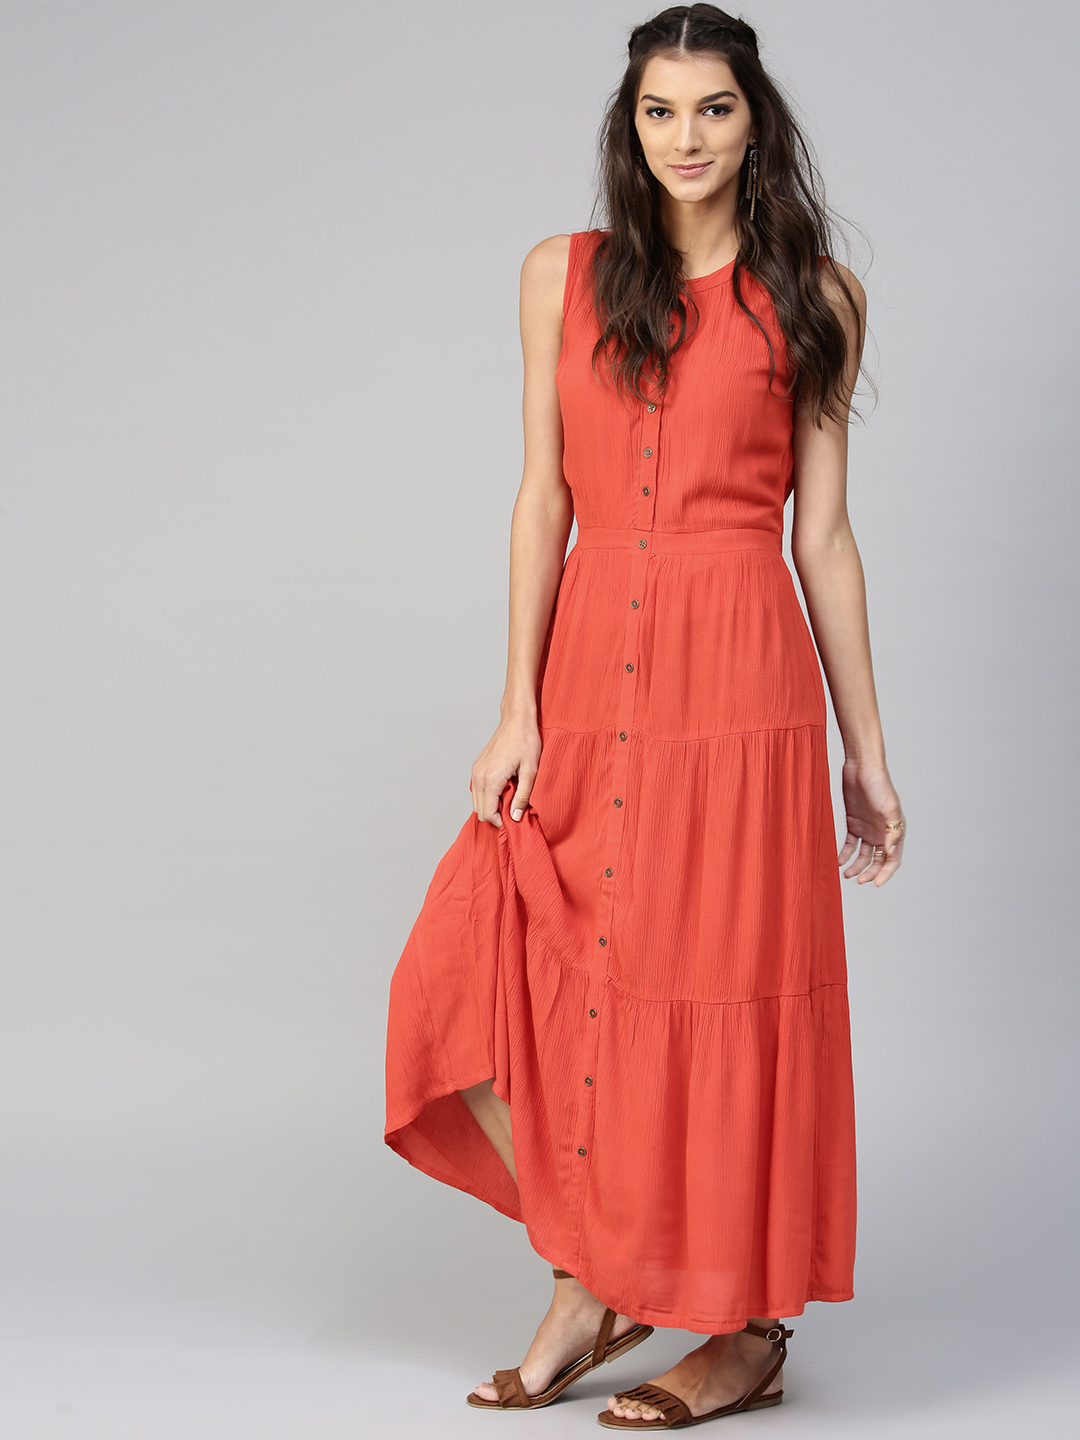 SASSAFRAS Women Red Solid Tiered Maxi Dress Price in India